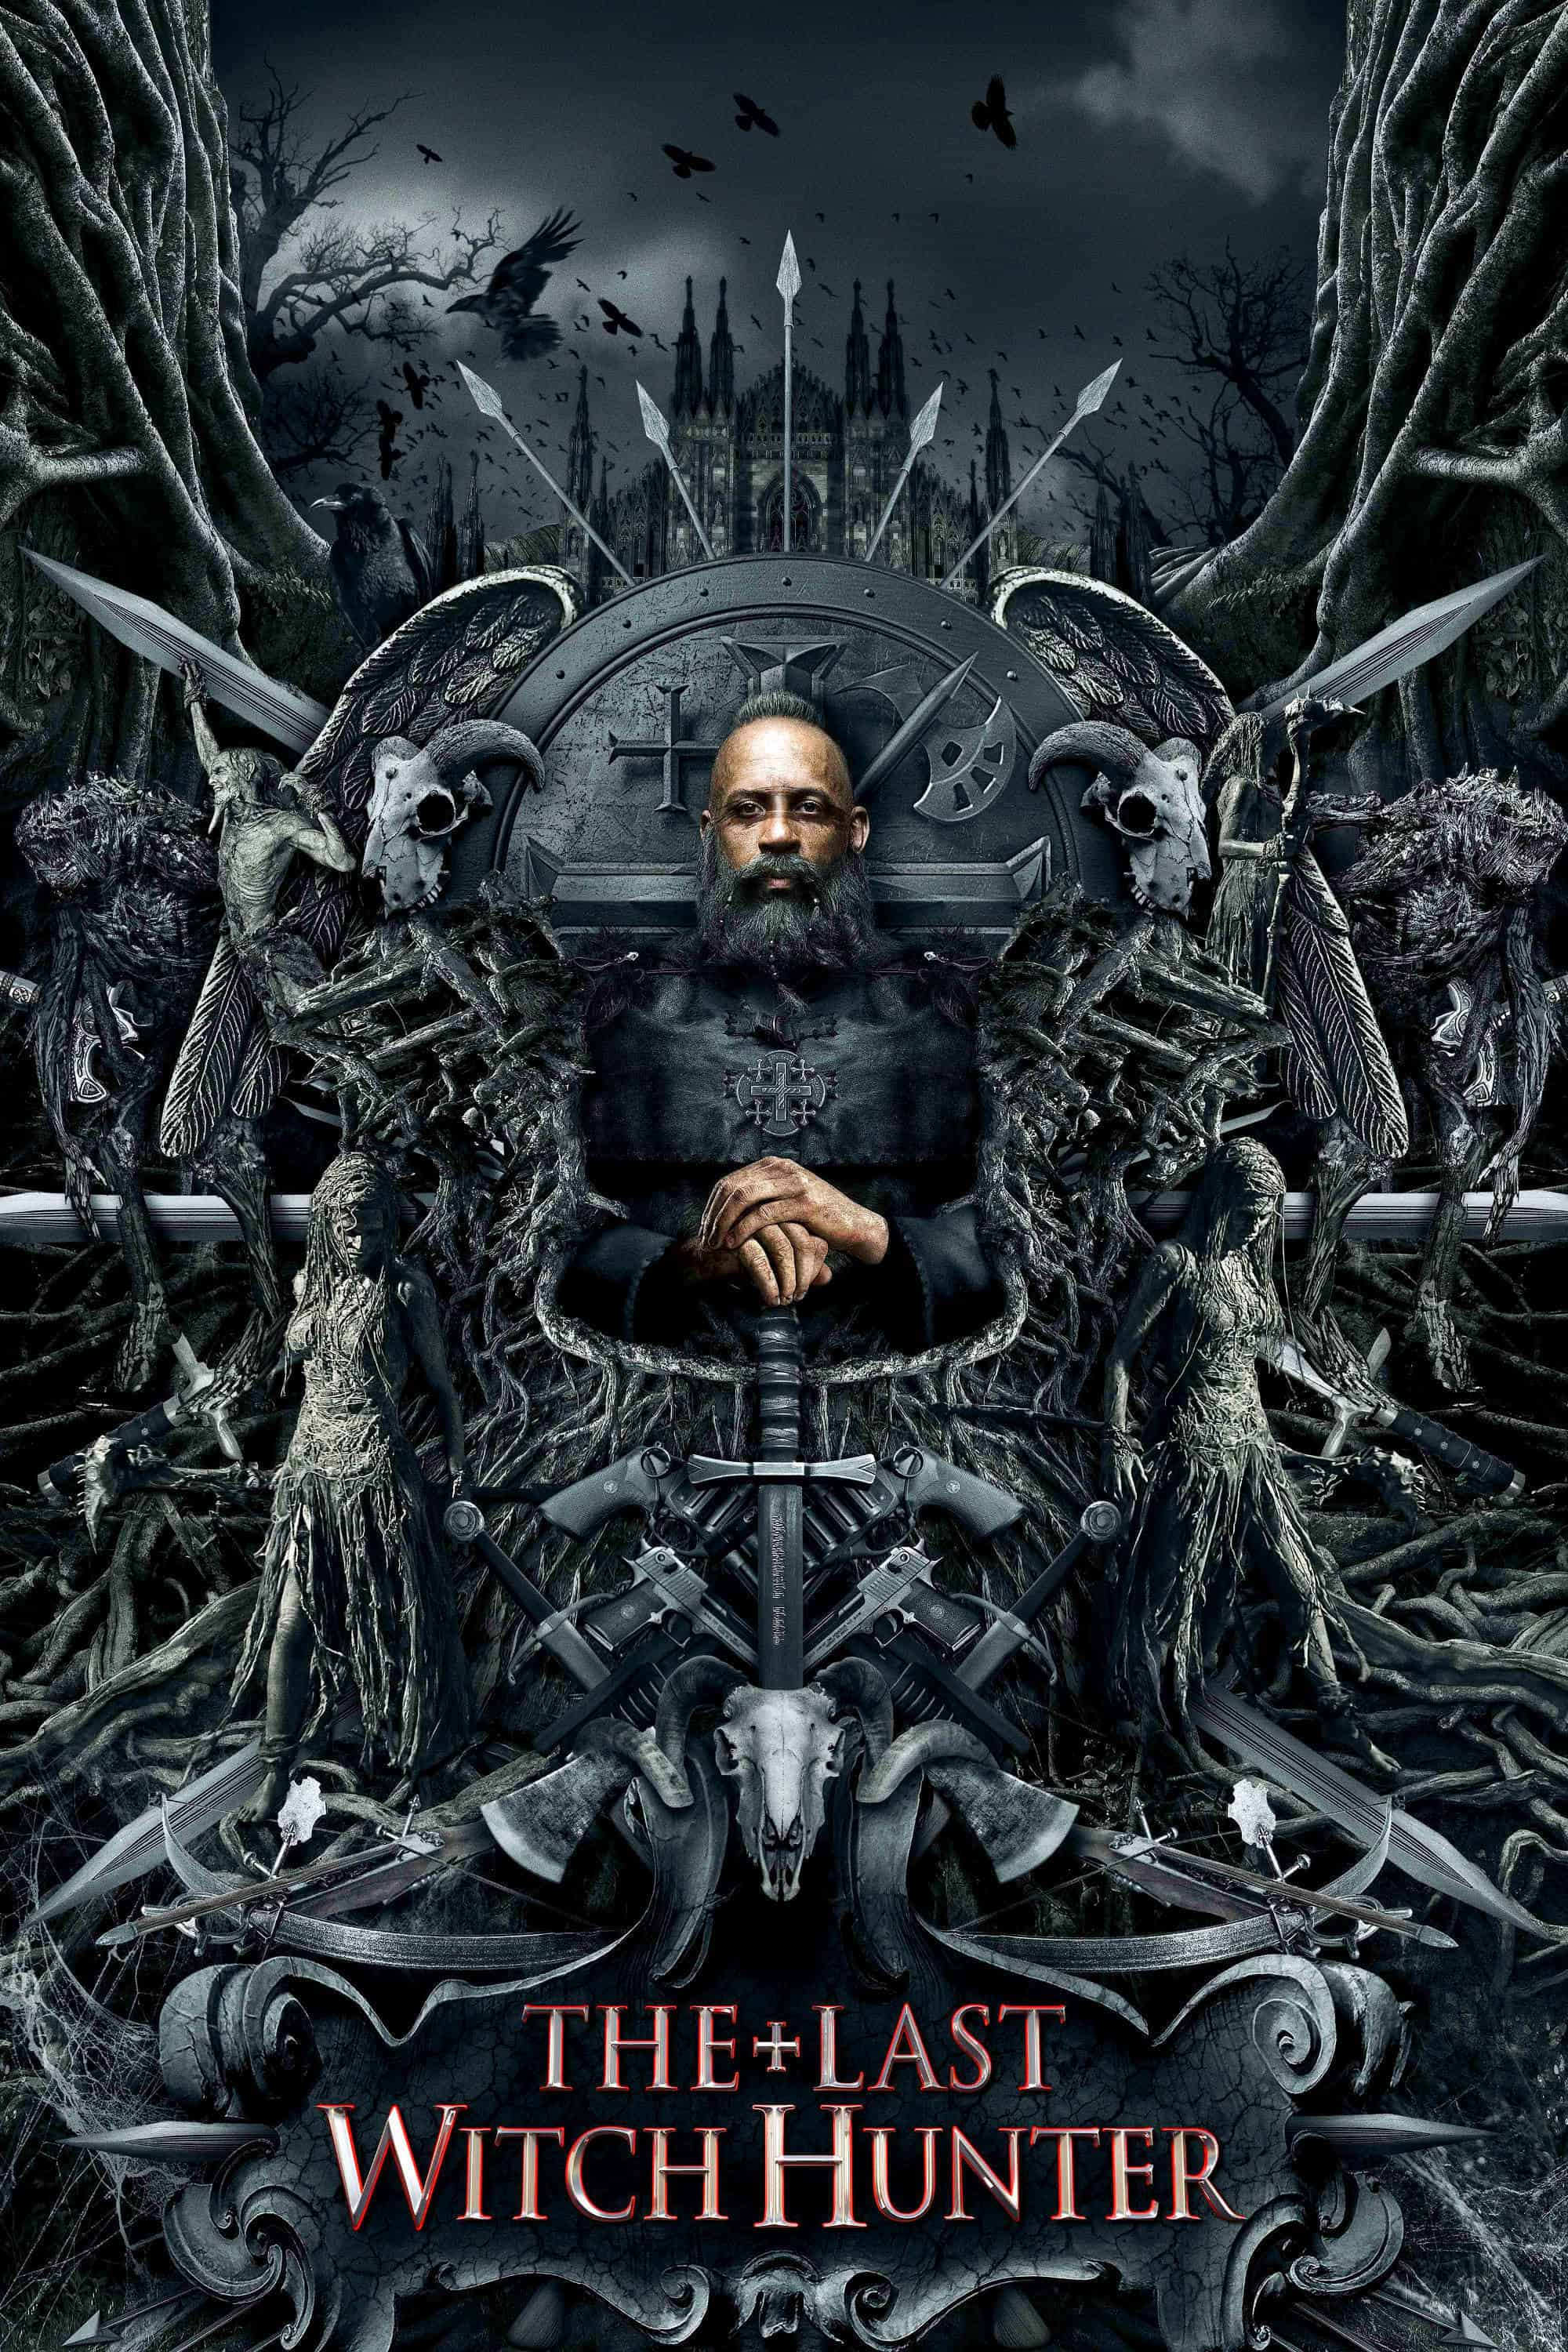 The Last Witch Hunter, 2015